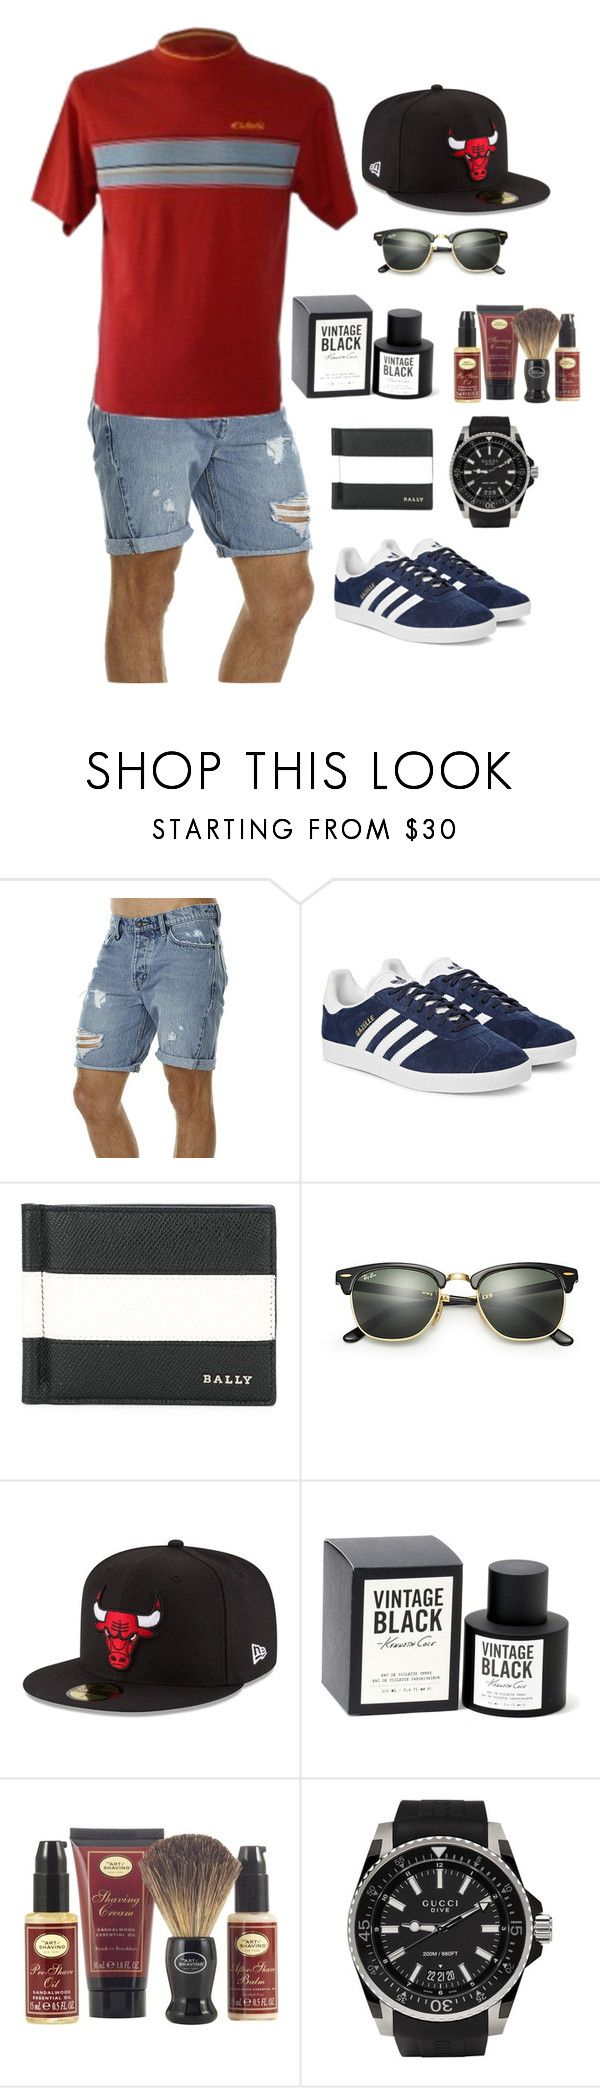 """""""Sunday Session"""" by desertlilyvintage on Polyvore featuring Neuw, adidas Originals, Bally, Ray-Ban, New Era, Kenneth Cole, The Art of Shaving, Gucci, men's fashion and menswear"""